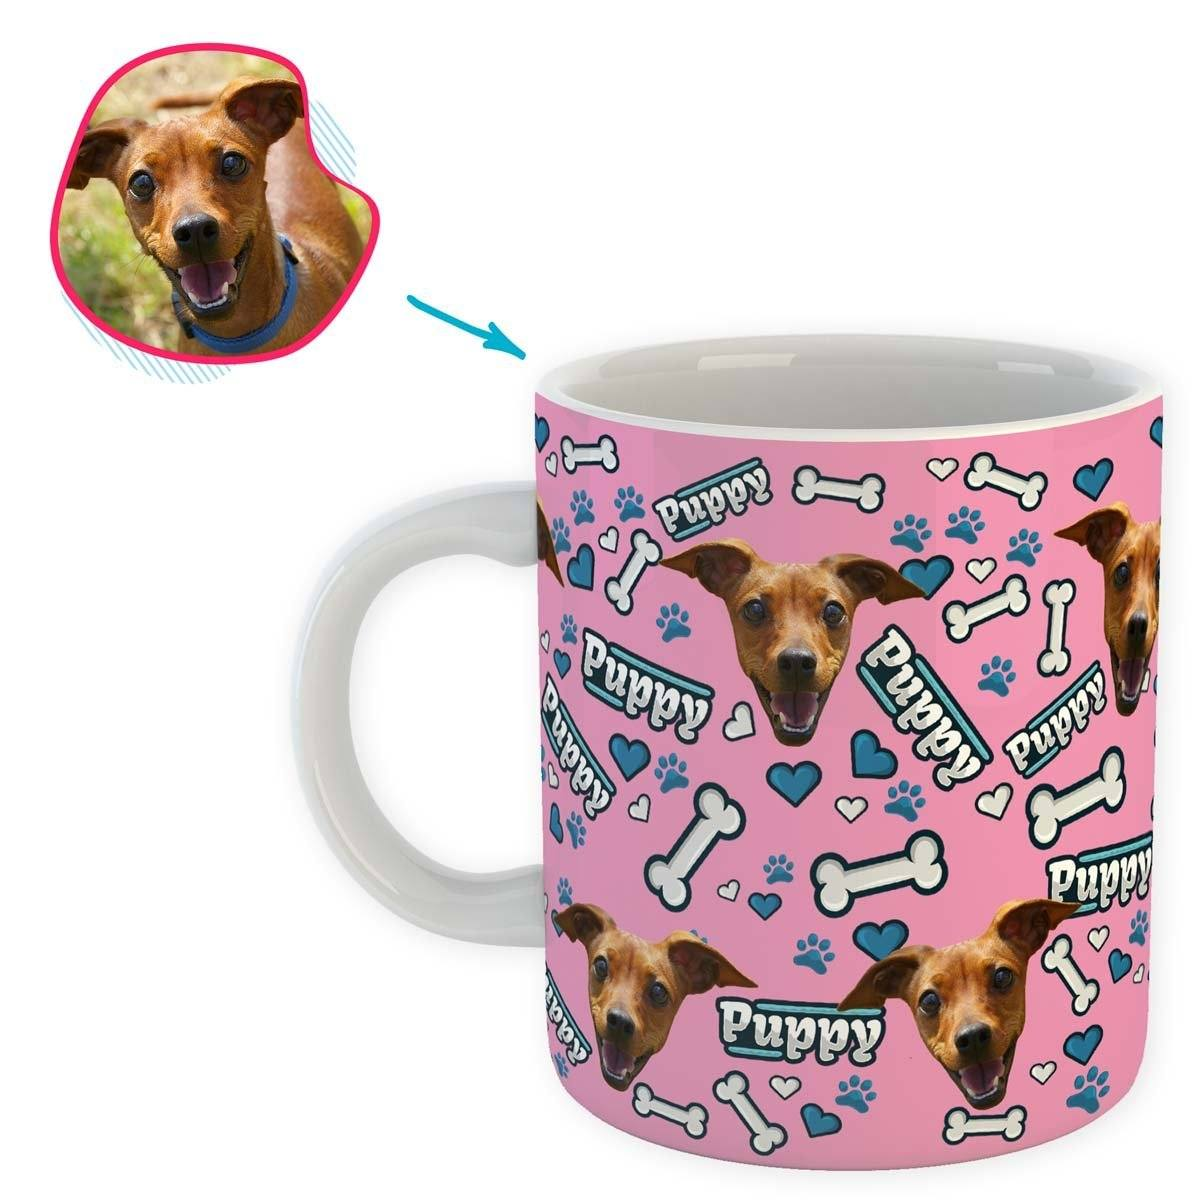 pink Puppy mug personalized with photo of face printed on it